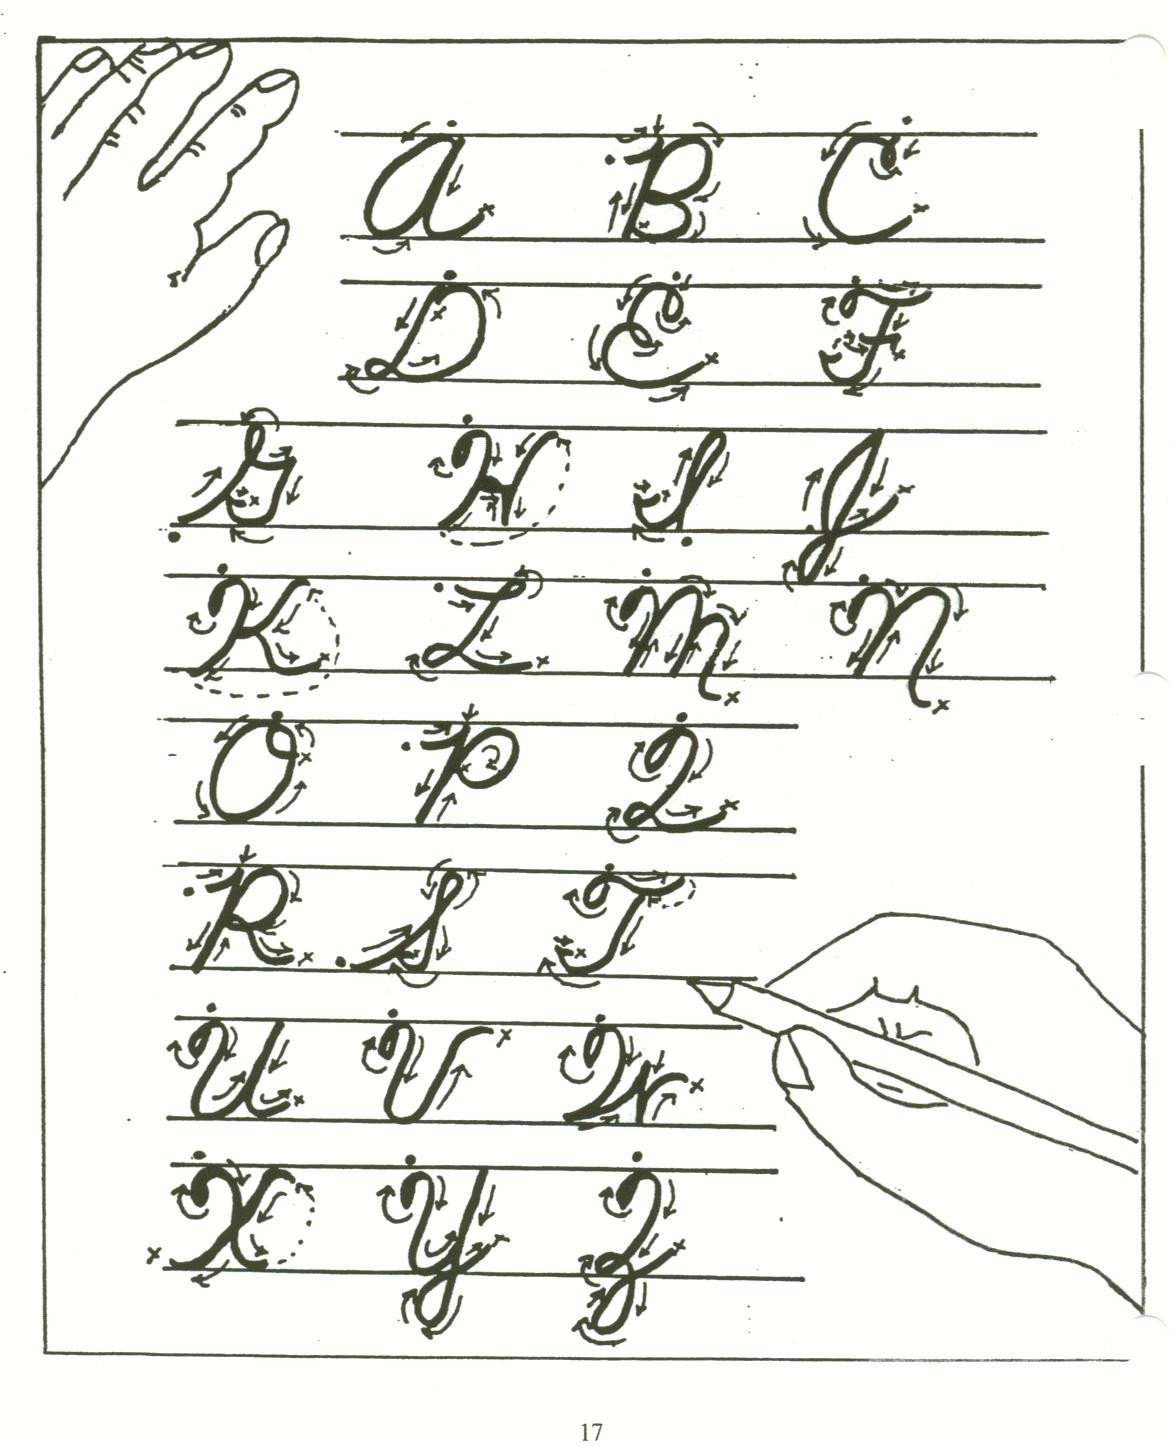 Cursive Paragraphs Worksheets Cursive Writing Alphabet and Easy order to Teach Cursive